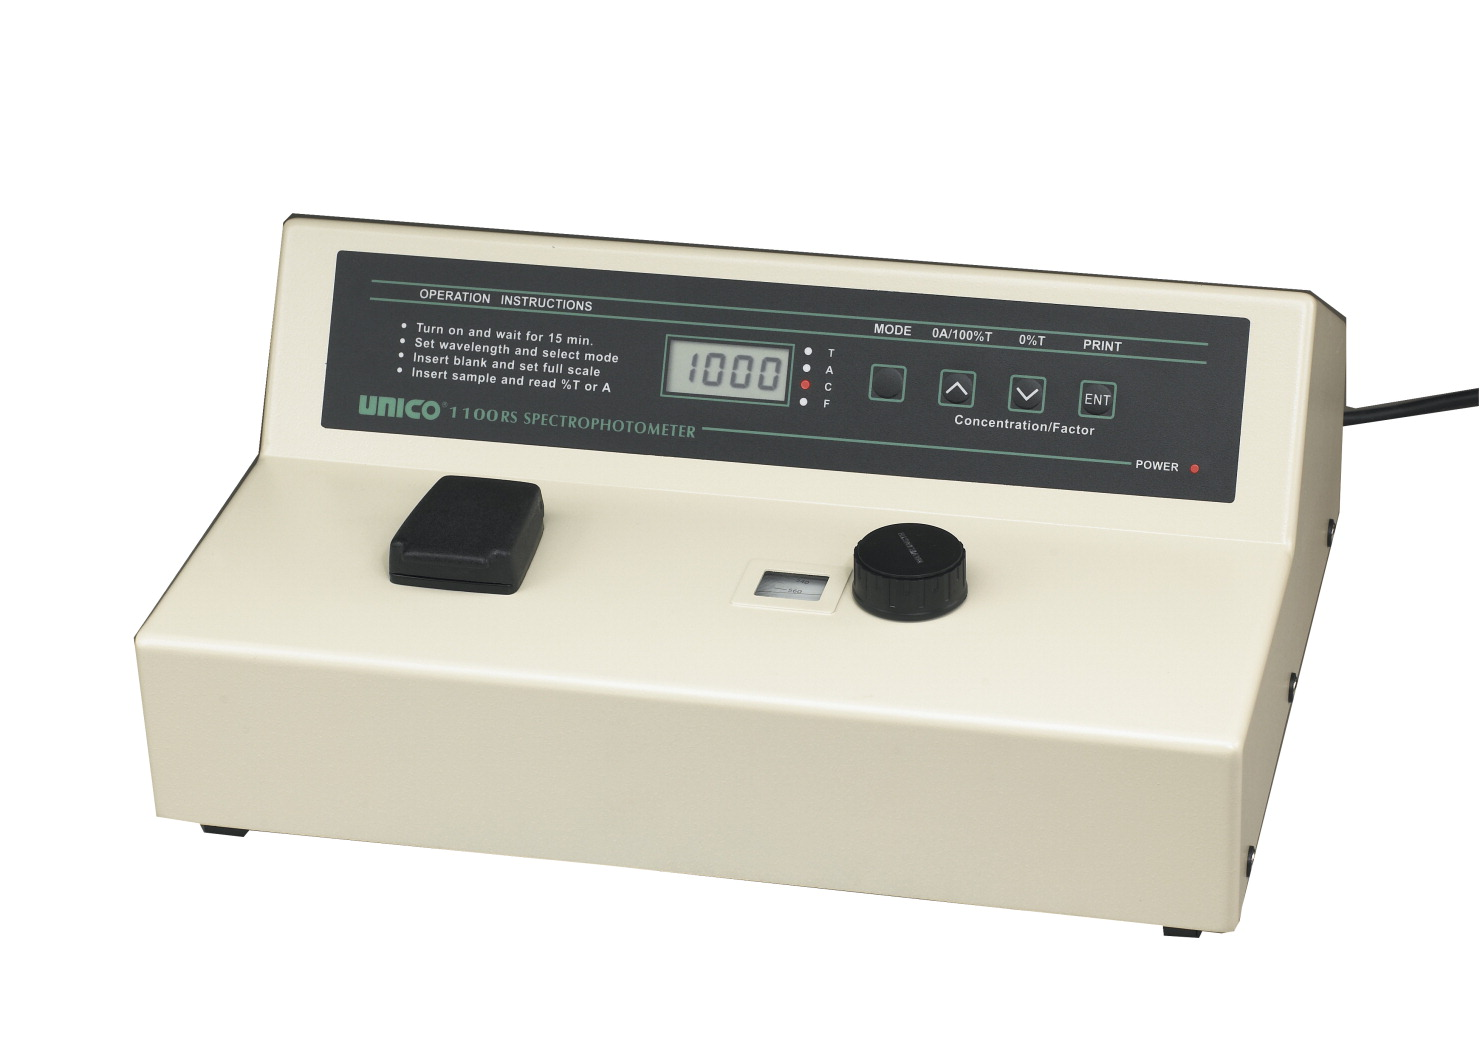 thermo scientific spectronic 200 manual